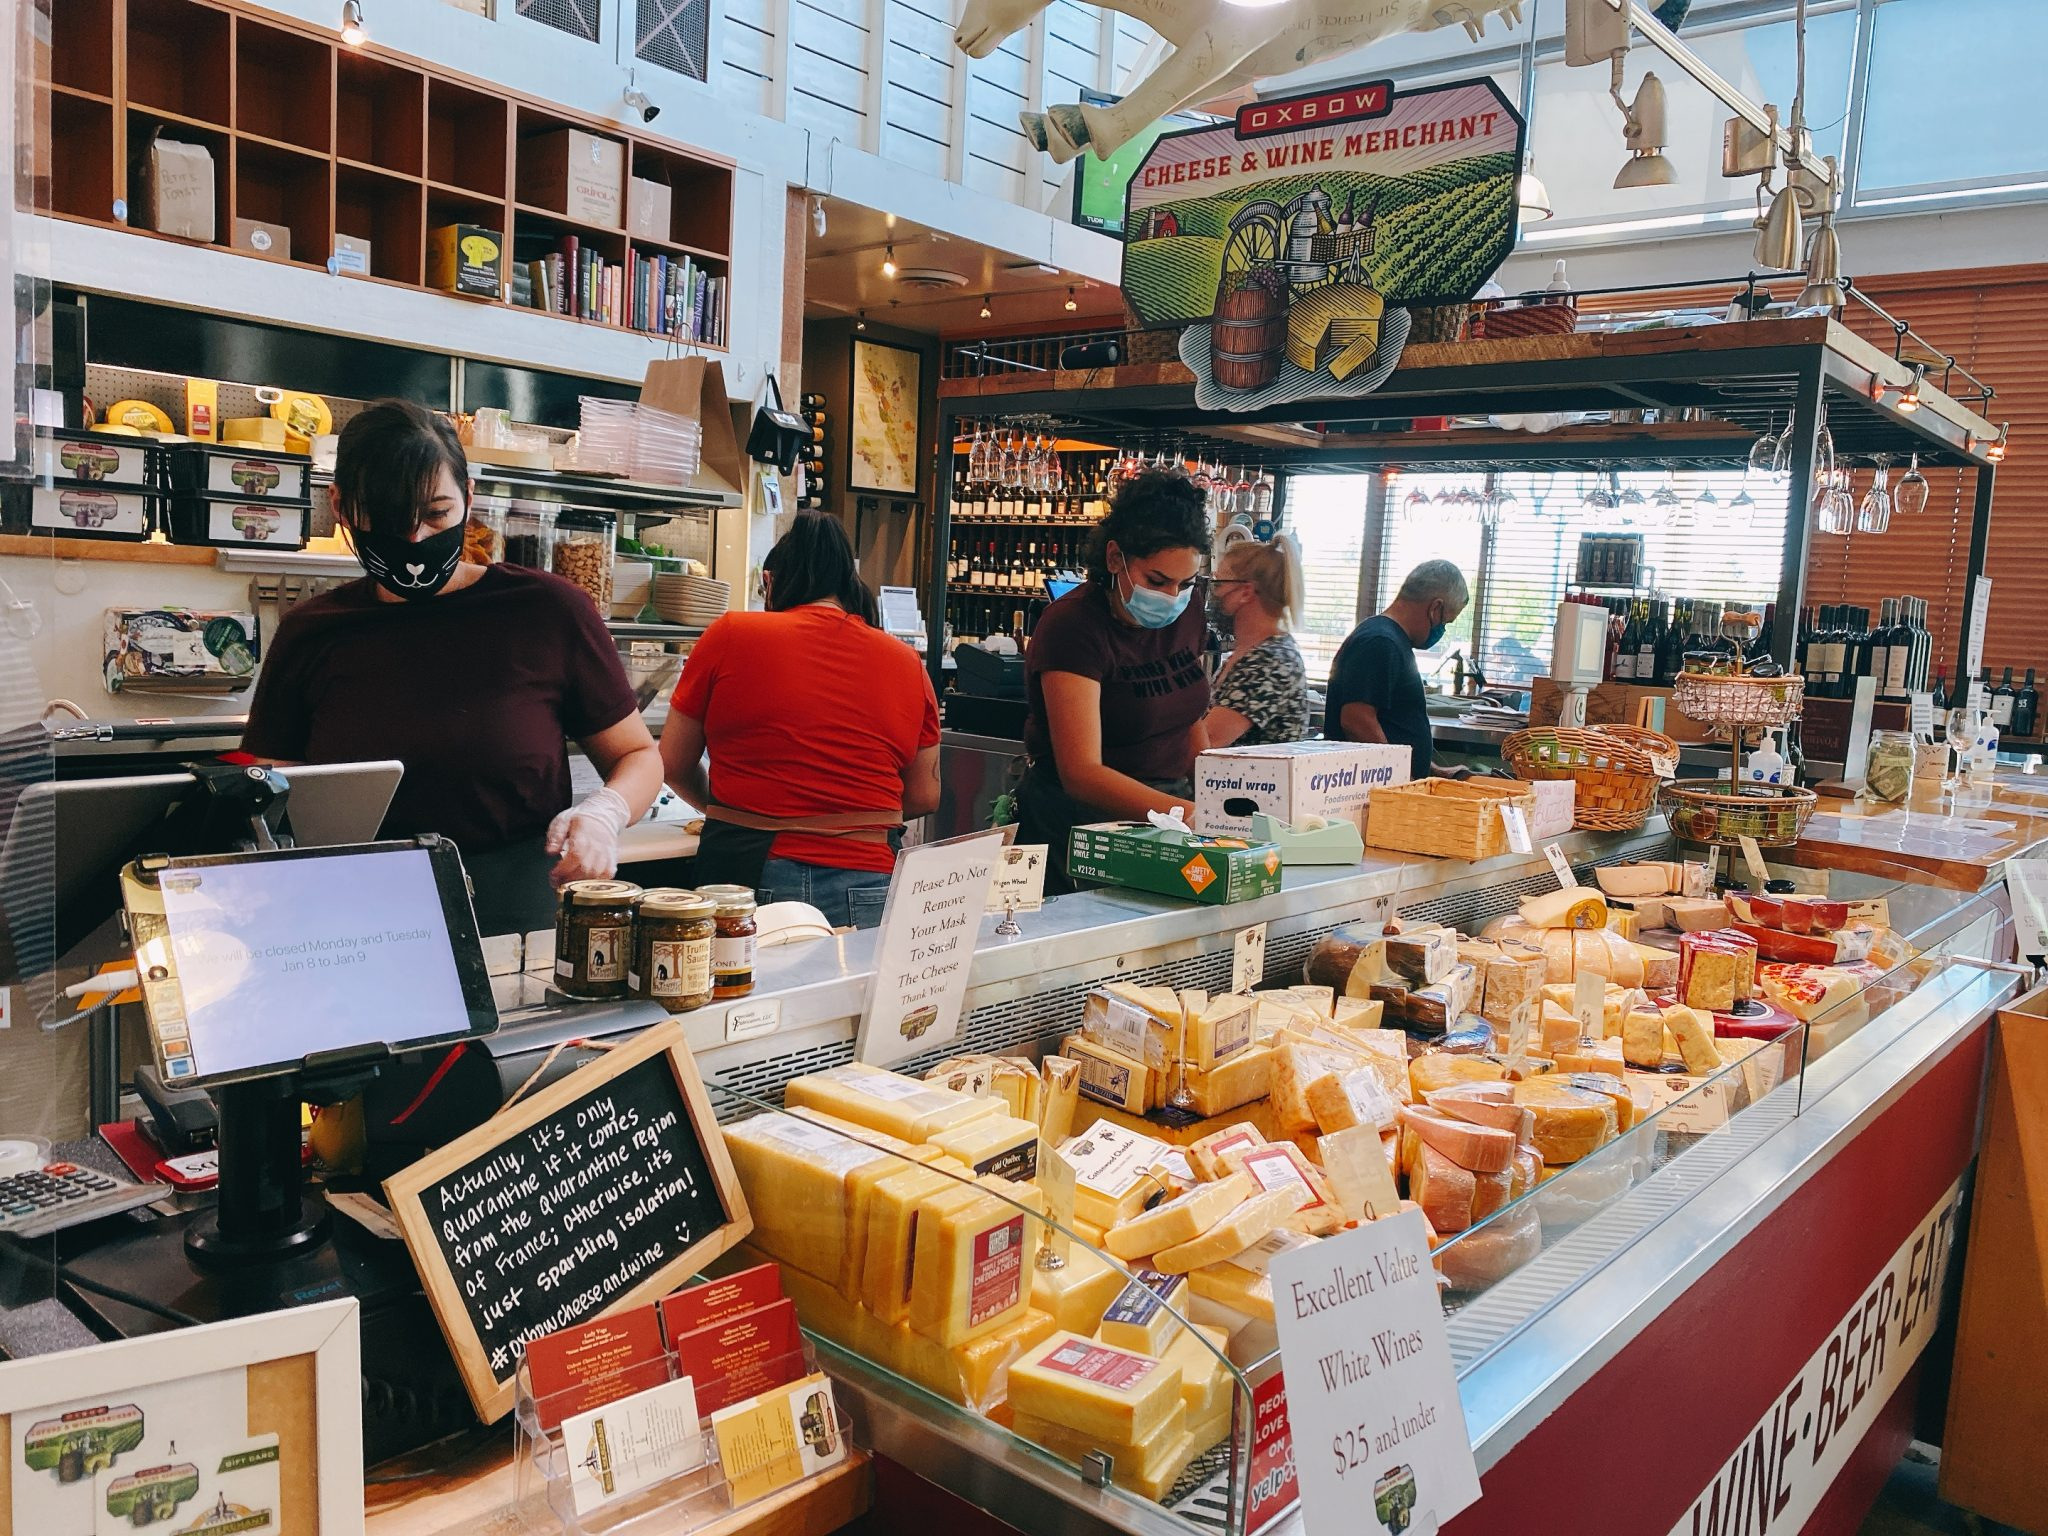 cheese merchant at Oxbow Market in Downtown Napa, CA